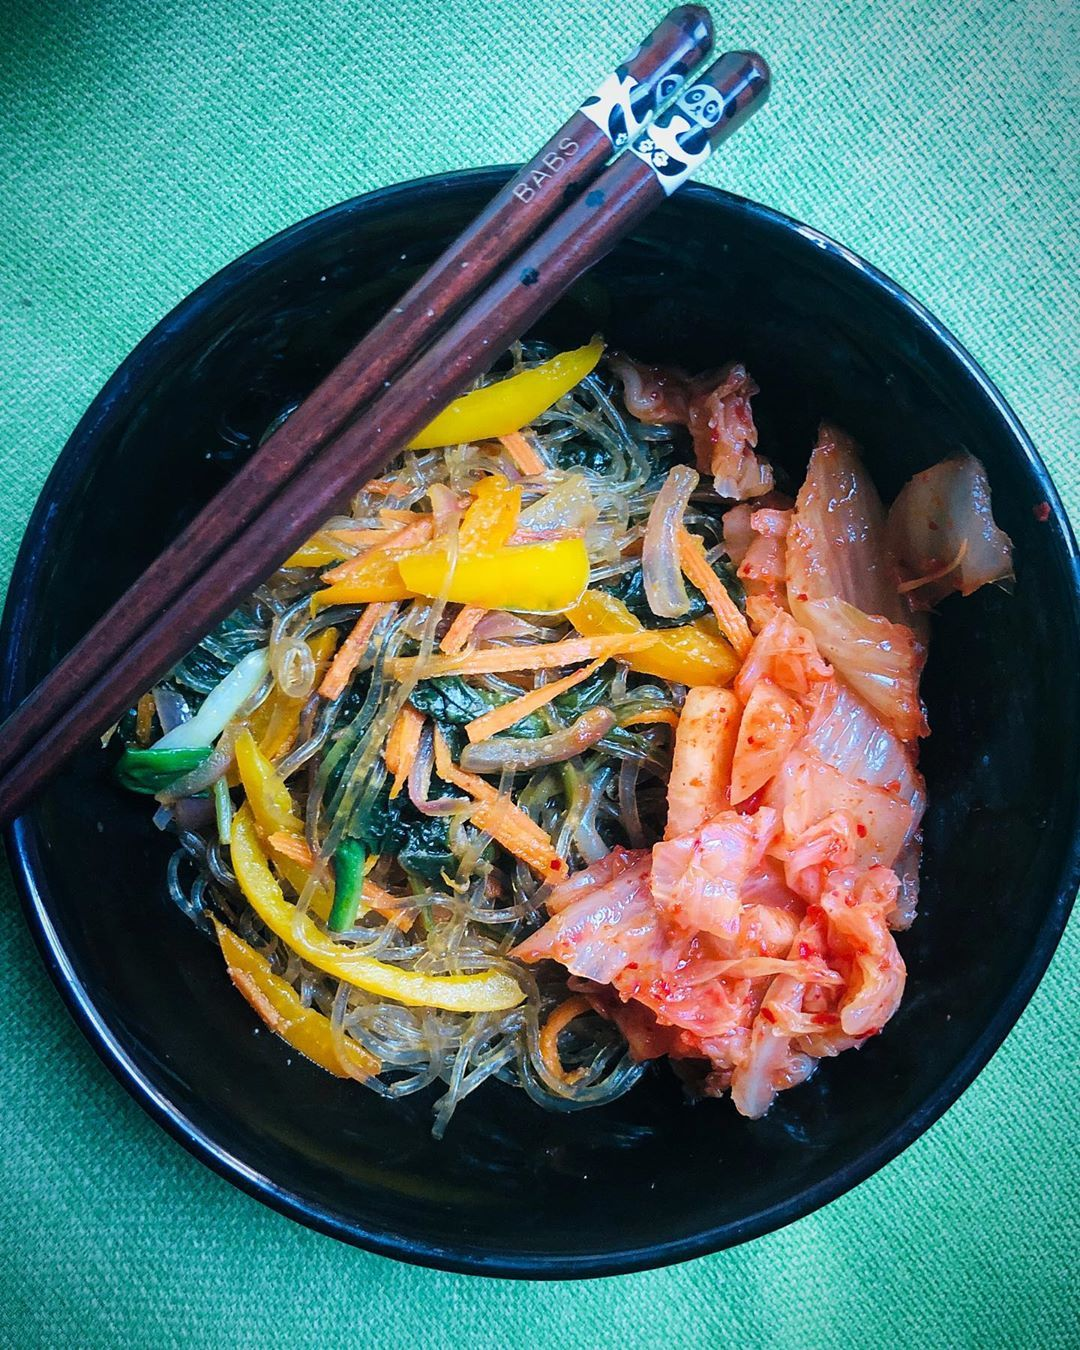 Weekend recovery: Vegetable japchae with for a comforting .🍜🥬🌶🥕#cookathome